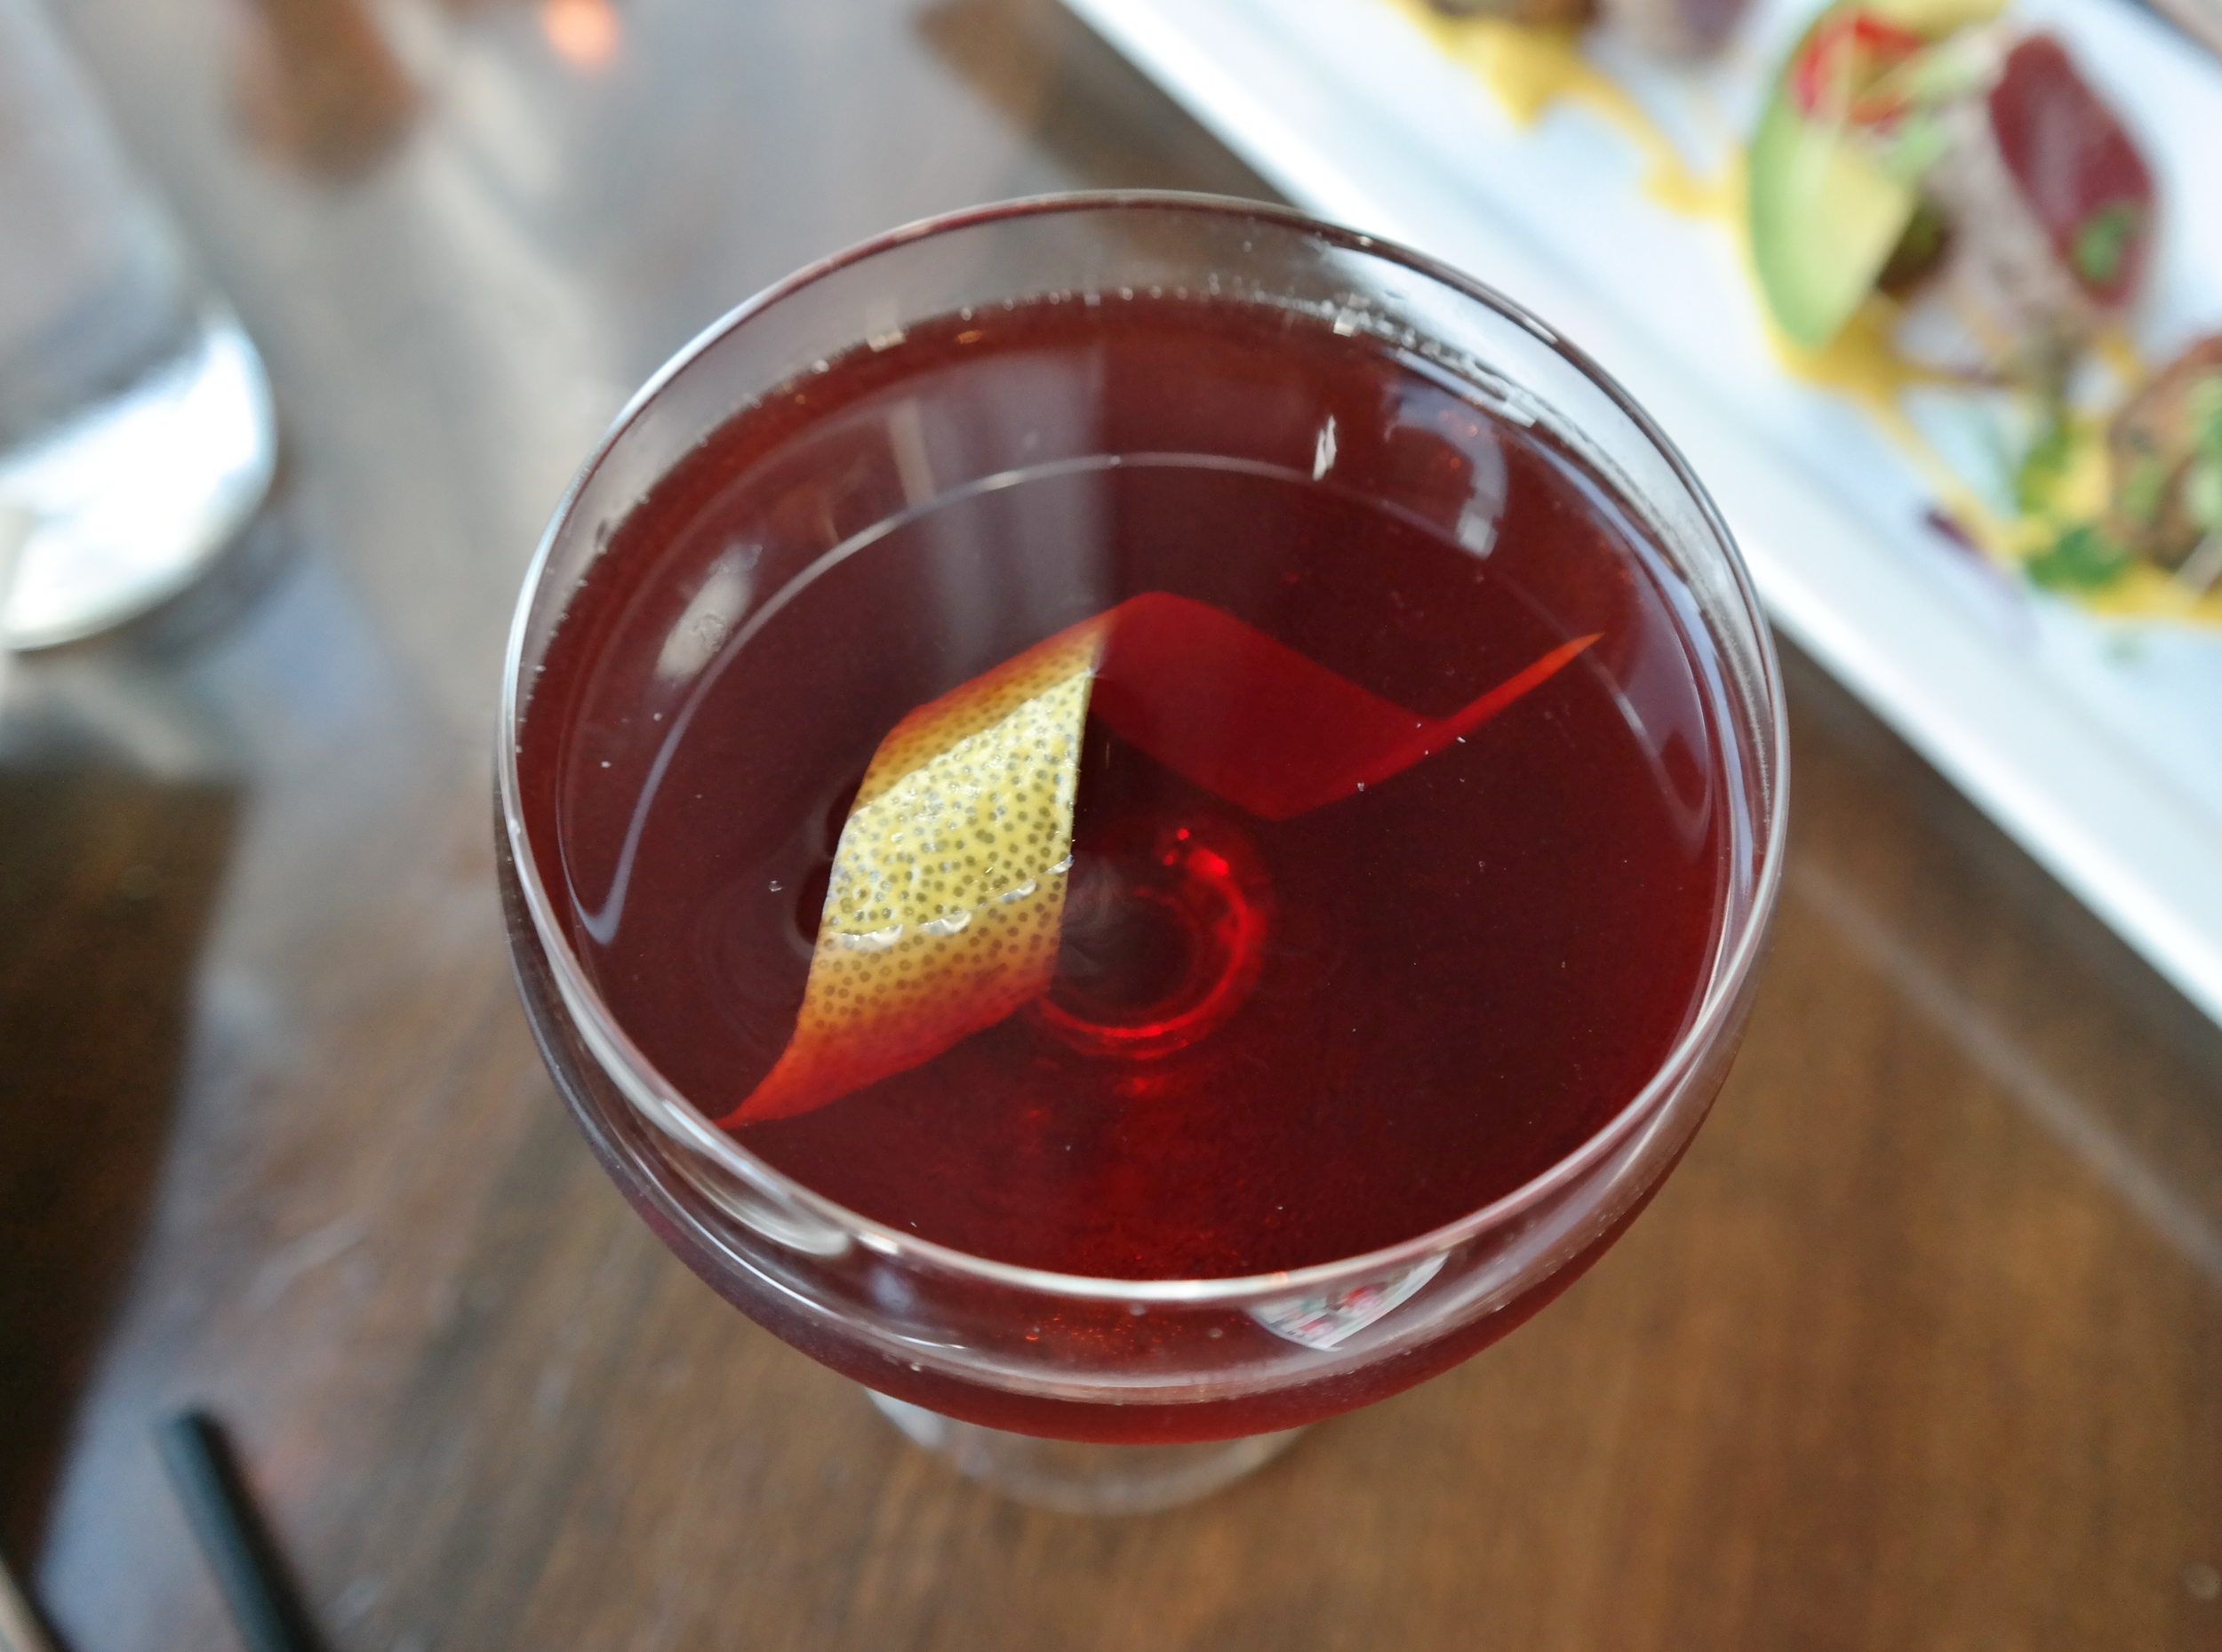 On Top of Mont Blanc: Bulldog gin, walnut liqueur, blackberry liqueur, and lemon bitters